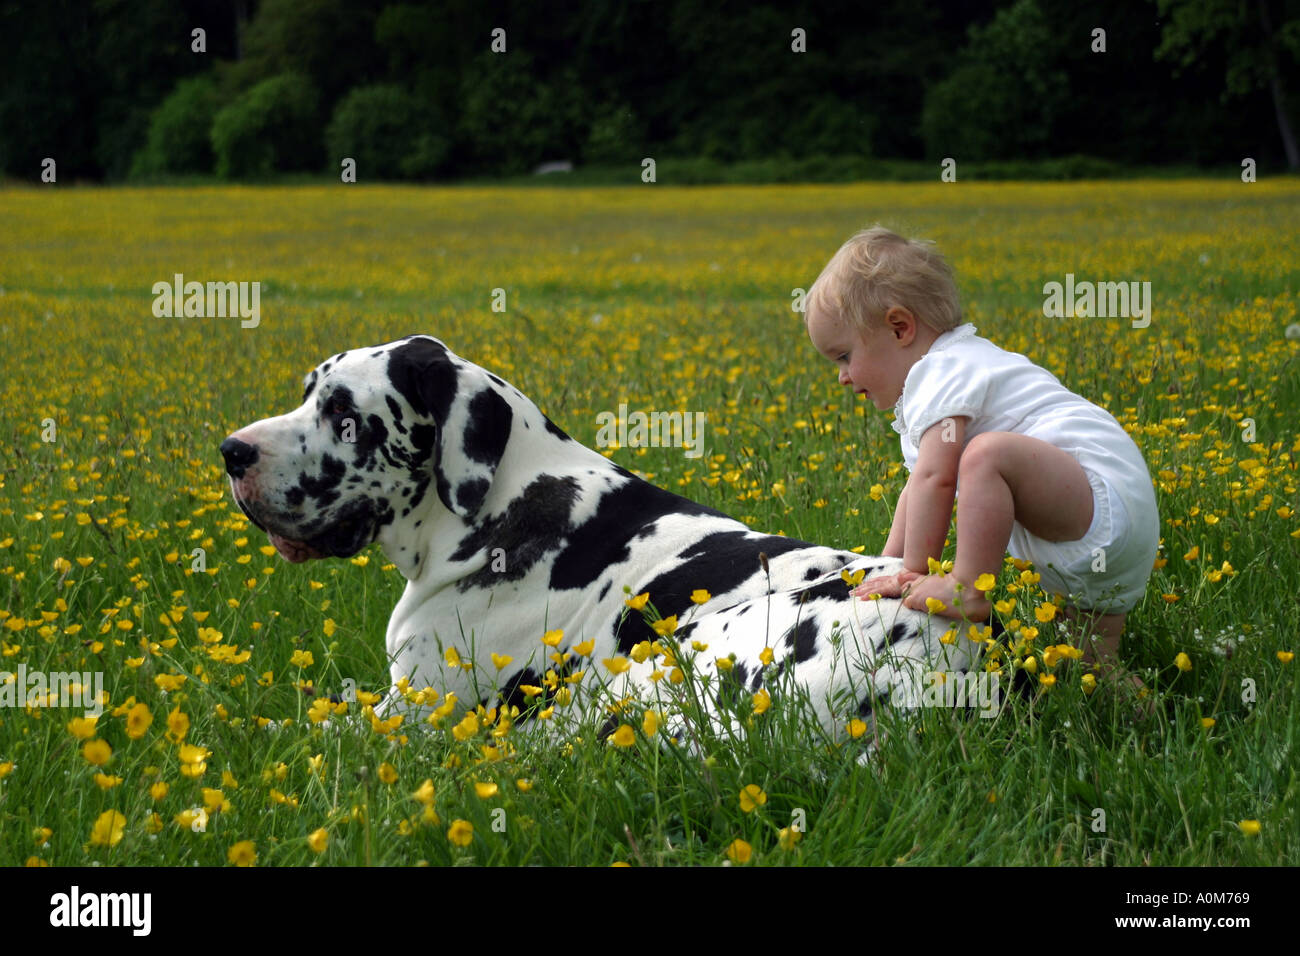 child with great dane dog - Stock Image